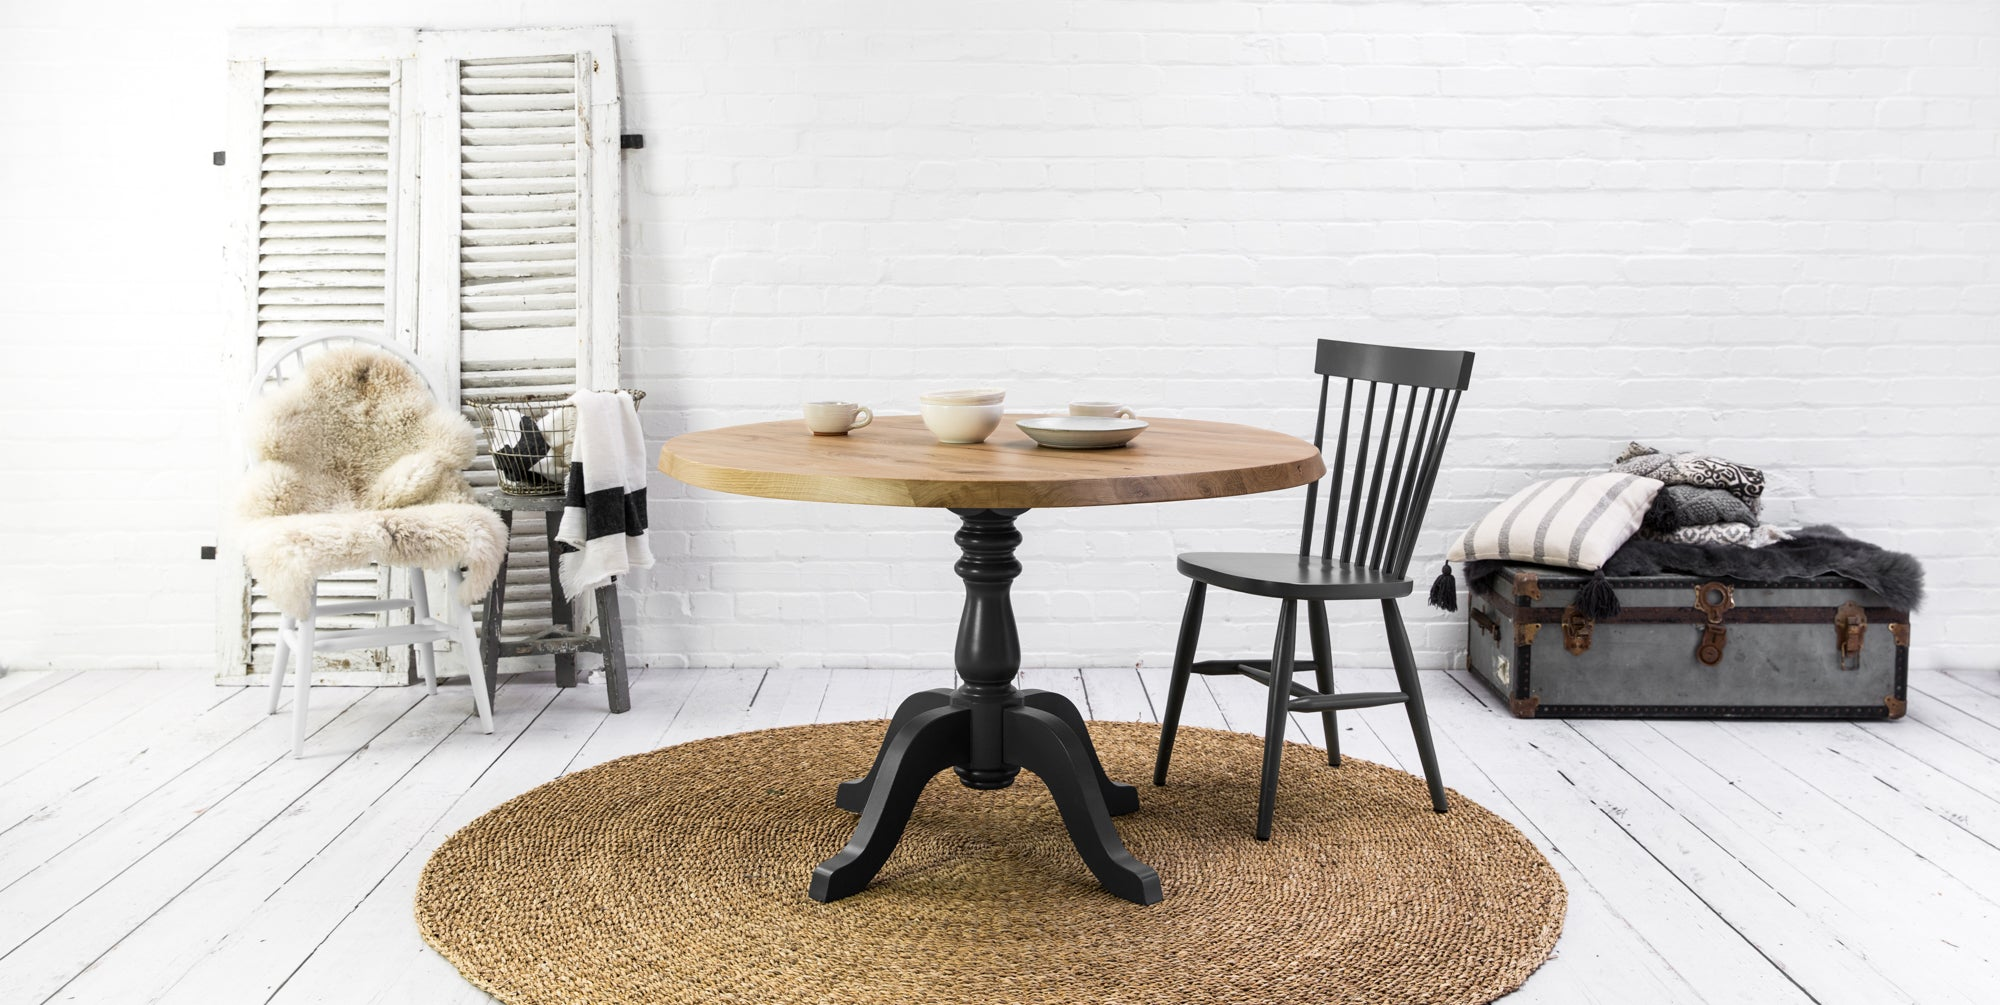 Awe Inspiring Farmhouse Table Farmhouse Furniture Farmhouse Table Company Lamtechconsult Wood Chair Design Ideas Lamtechconsultcom